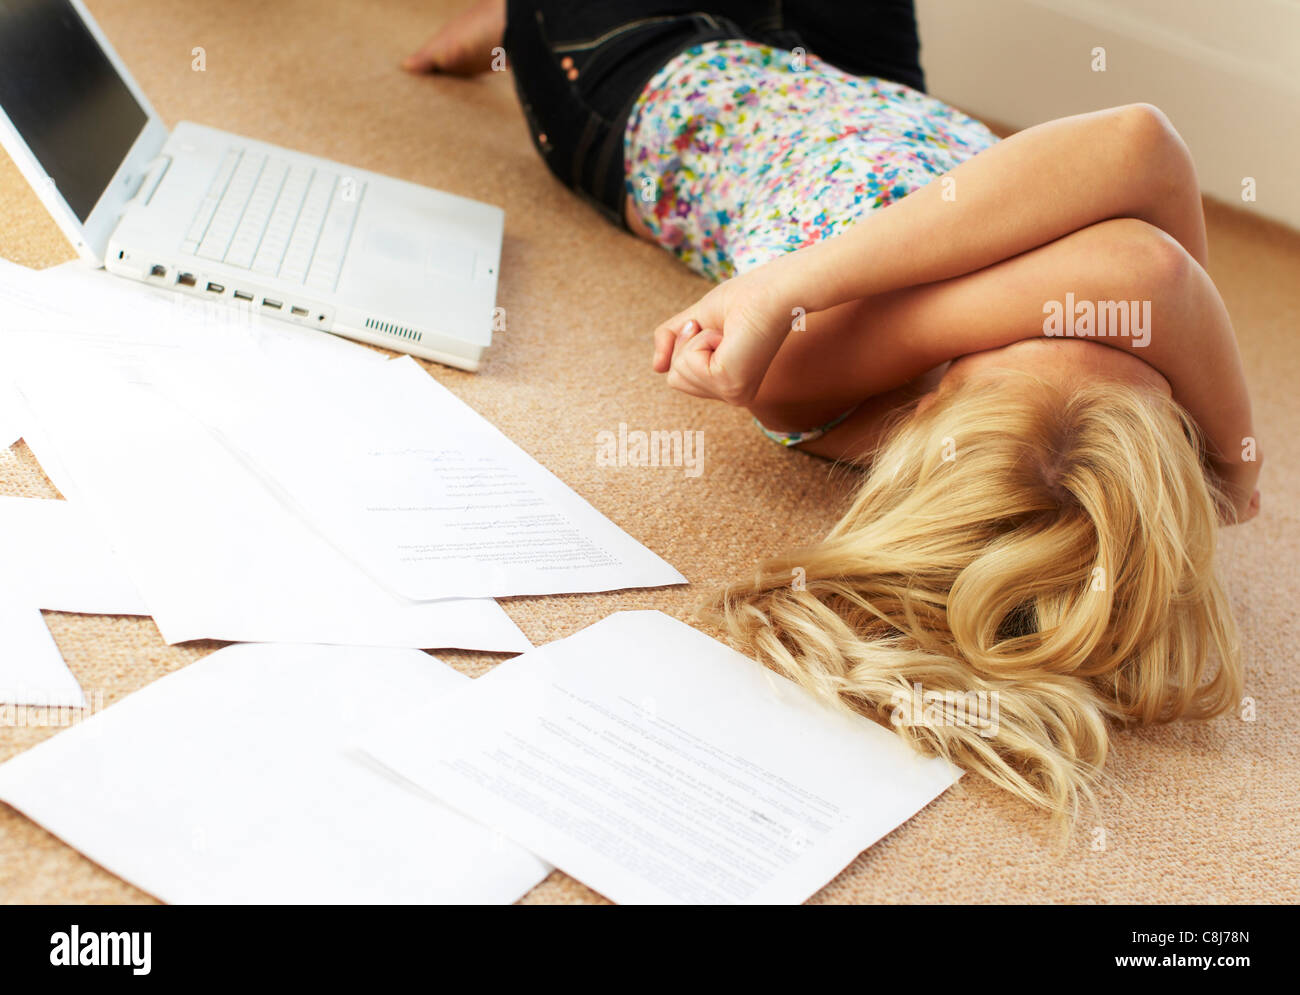 Worried looking girl with papers - Stock Image